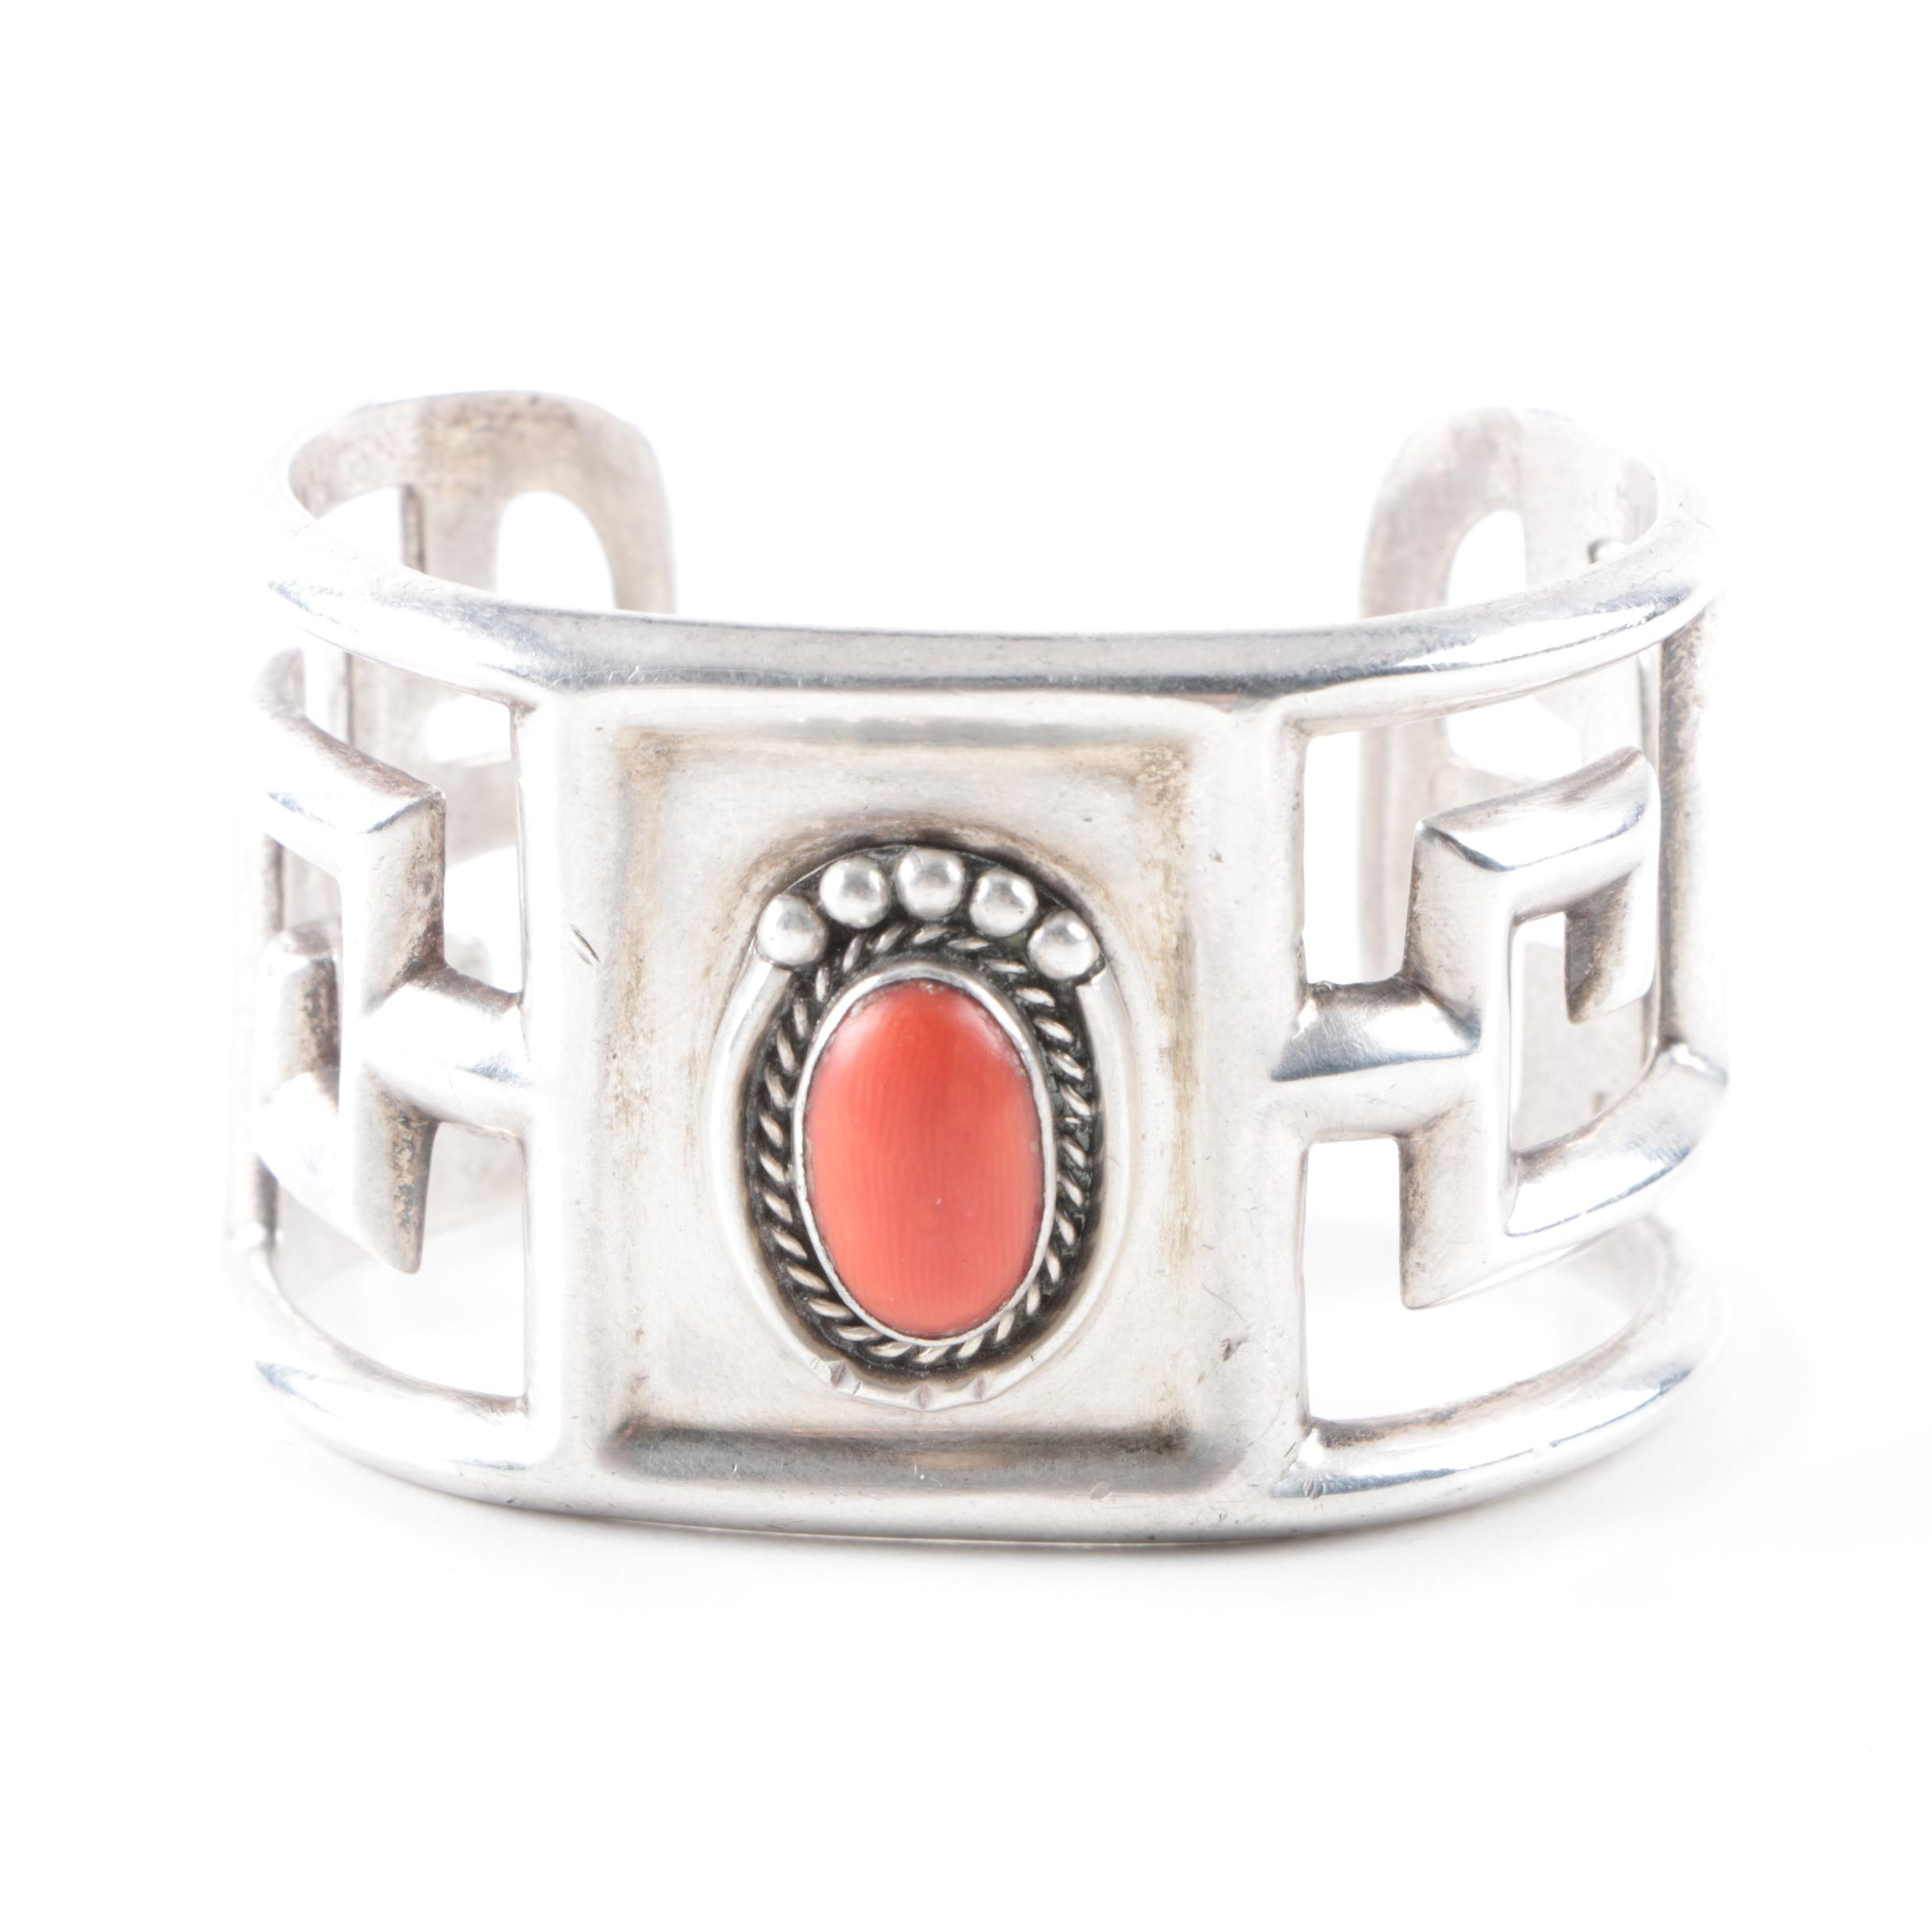 Geometric Southwest Stylized Sterling Silver Cuff Bracelet with Coral